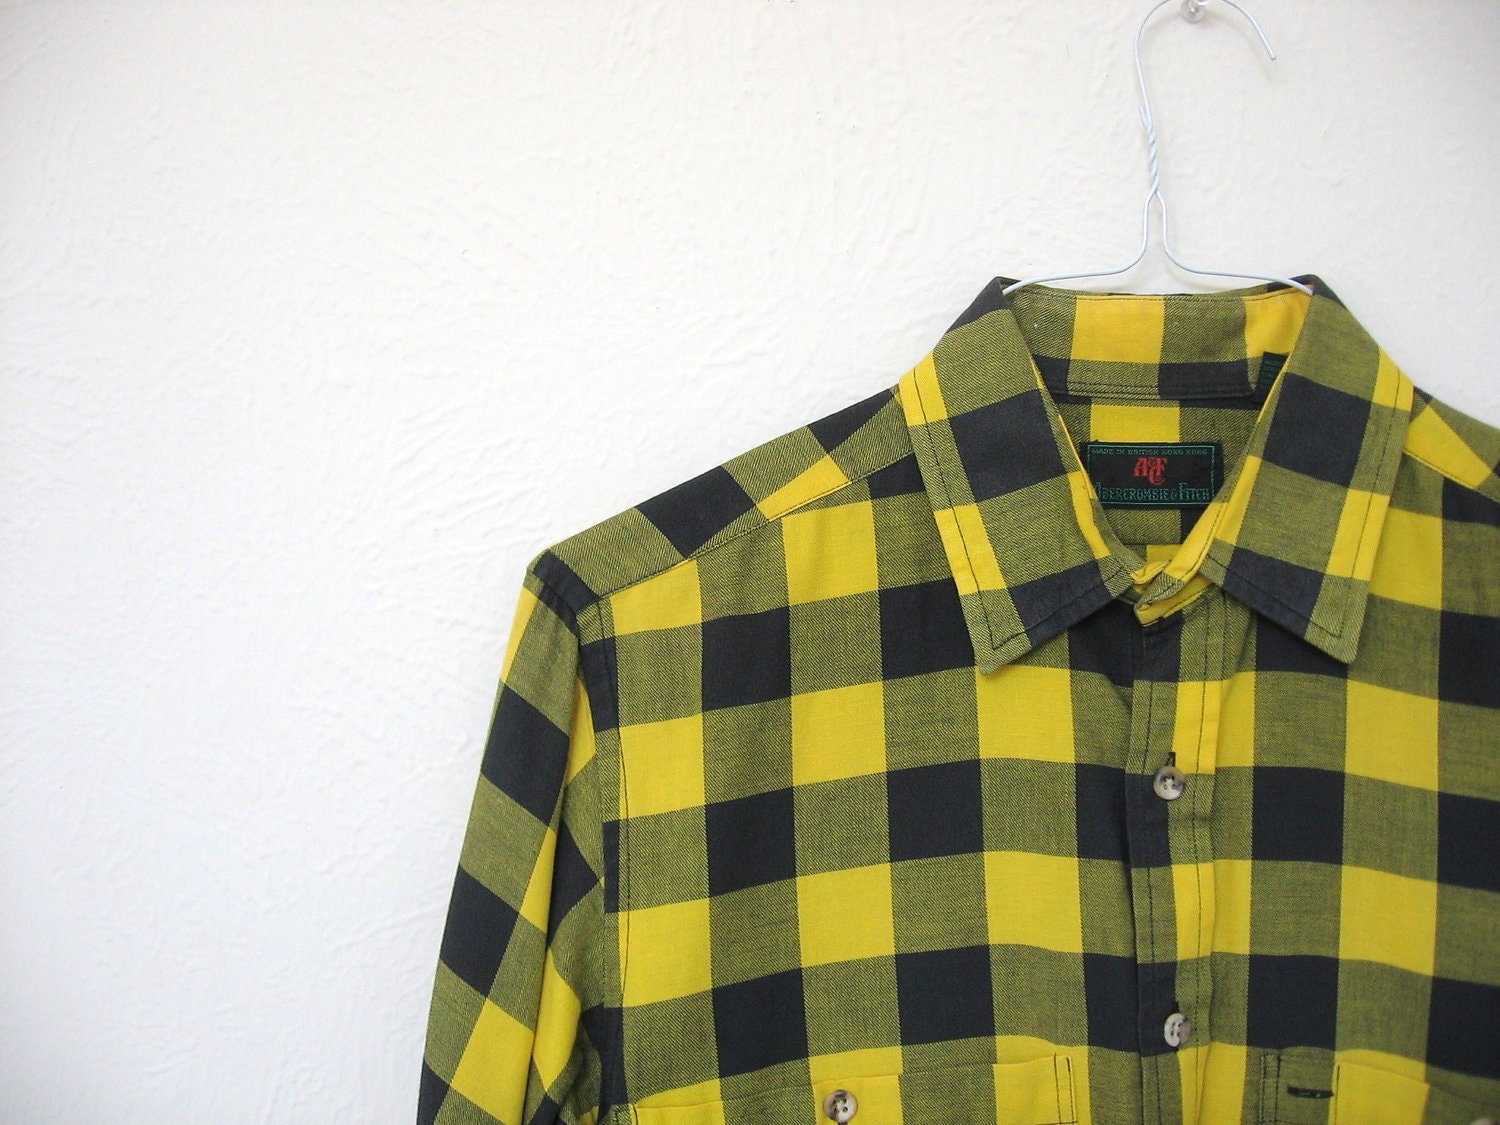 BRIXTON Bowery Black Combo Mens Flannel Shirt $ More Colors. BRIXTON Bowery Off White Mens Flannel Shirt $ Men's Flannel Shirts. Check out our selection of men's plaid flannels and match your new look with a pair of men's jeans.